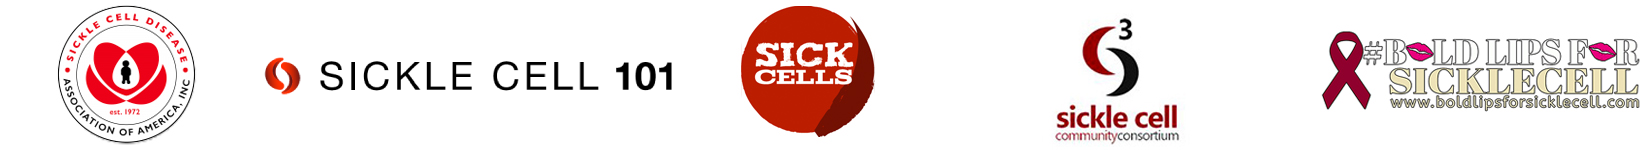 Sickle cell disease patient advocacy groups